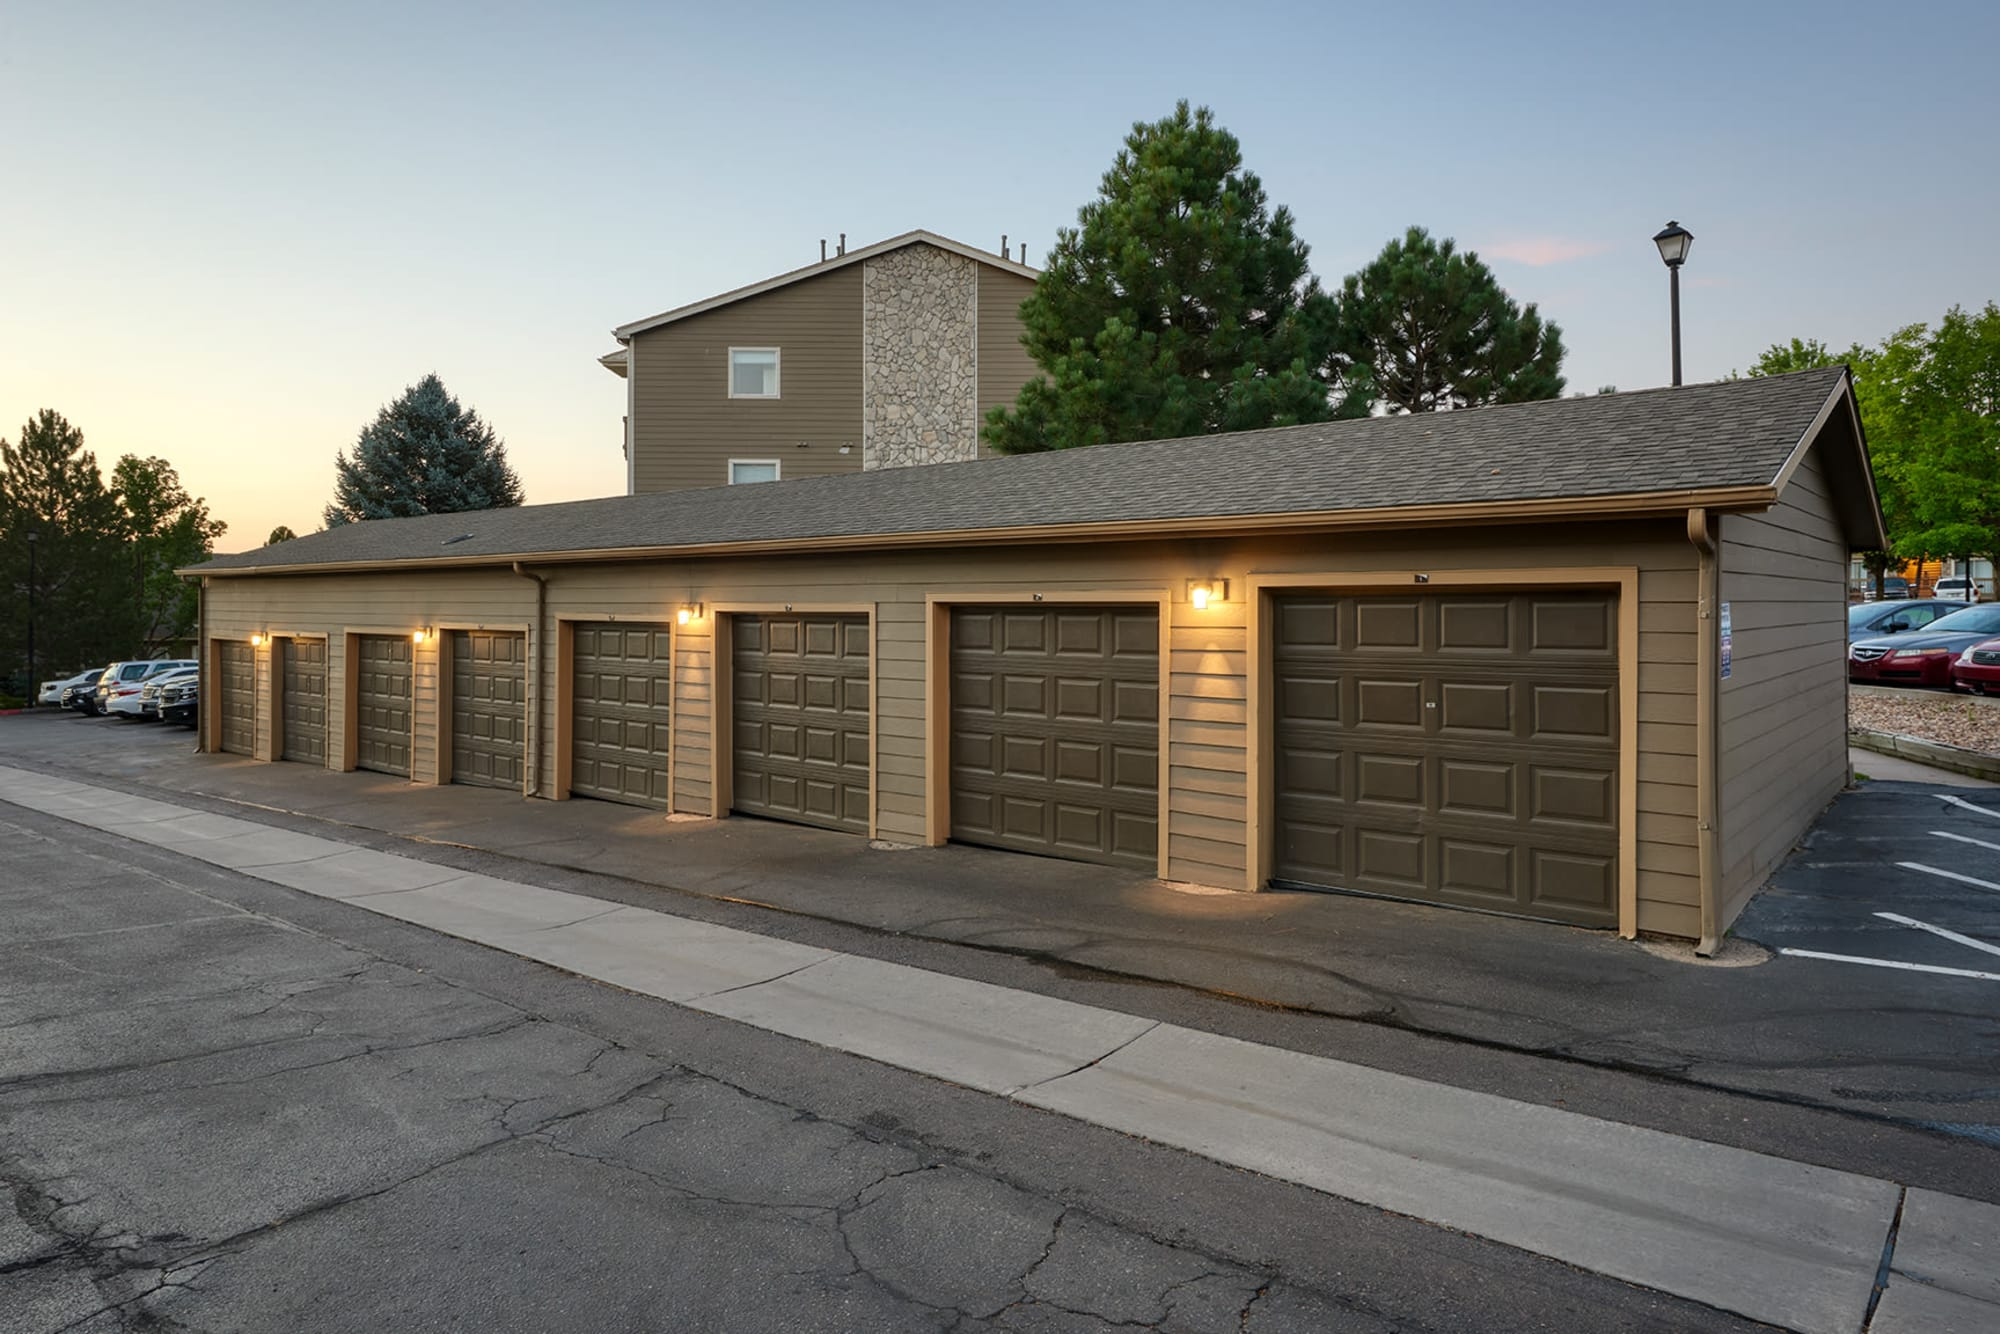 Detached Garages Available at Crossroads at City Center Apartments in Aurora, Colorado